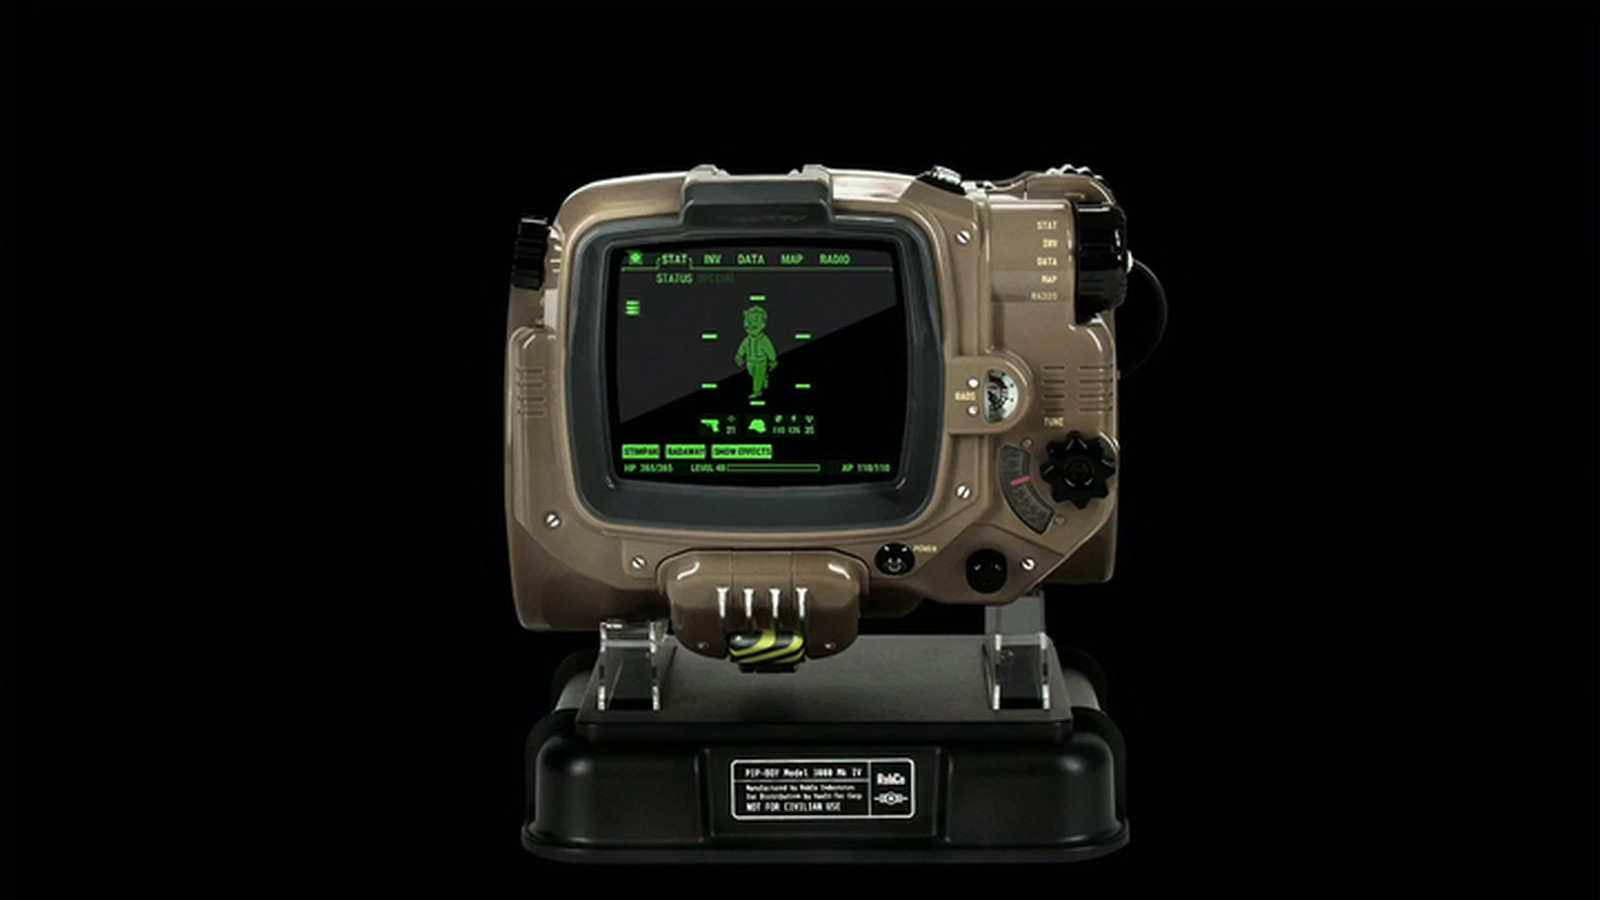 Fall Cell Phone Wallpaper The Pip Boy Is Fabulous In Fallout 4 And It S Real